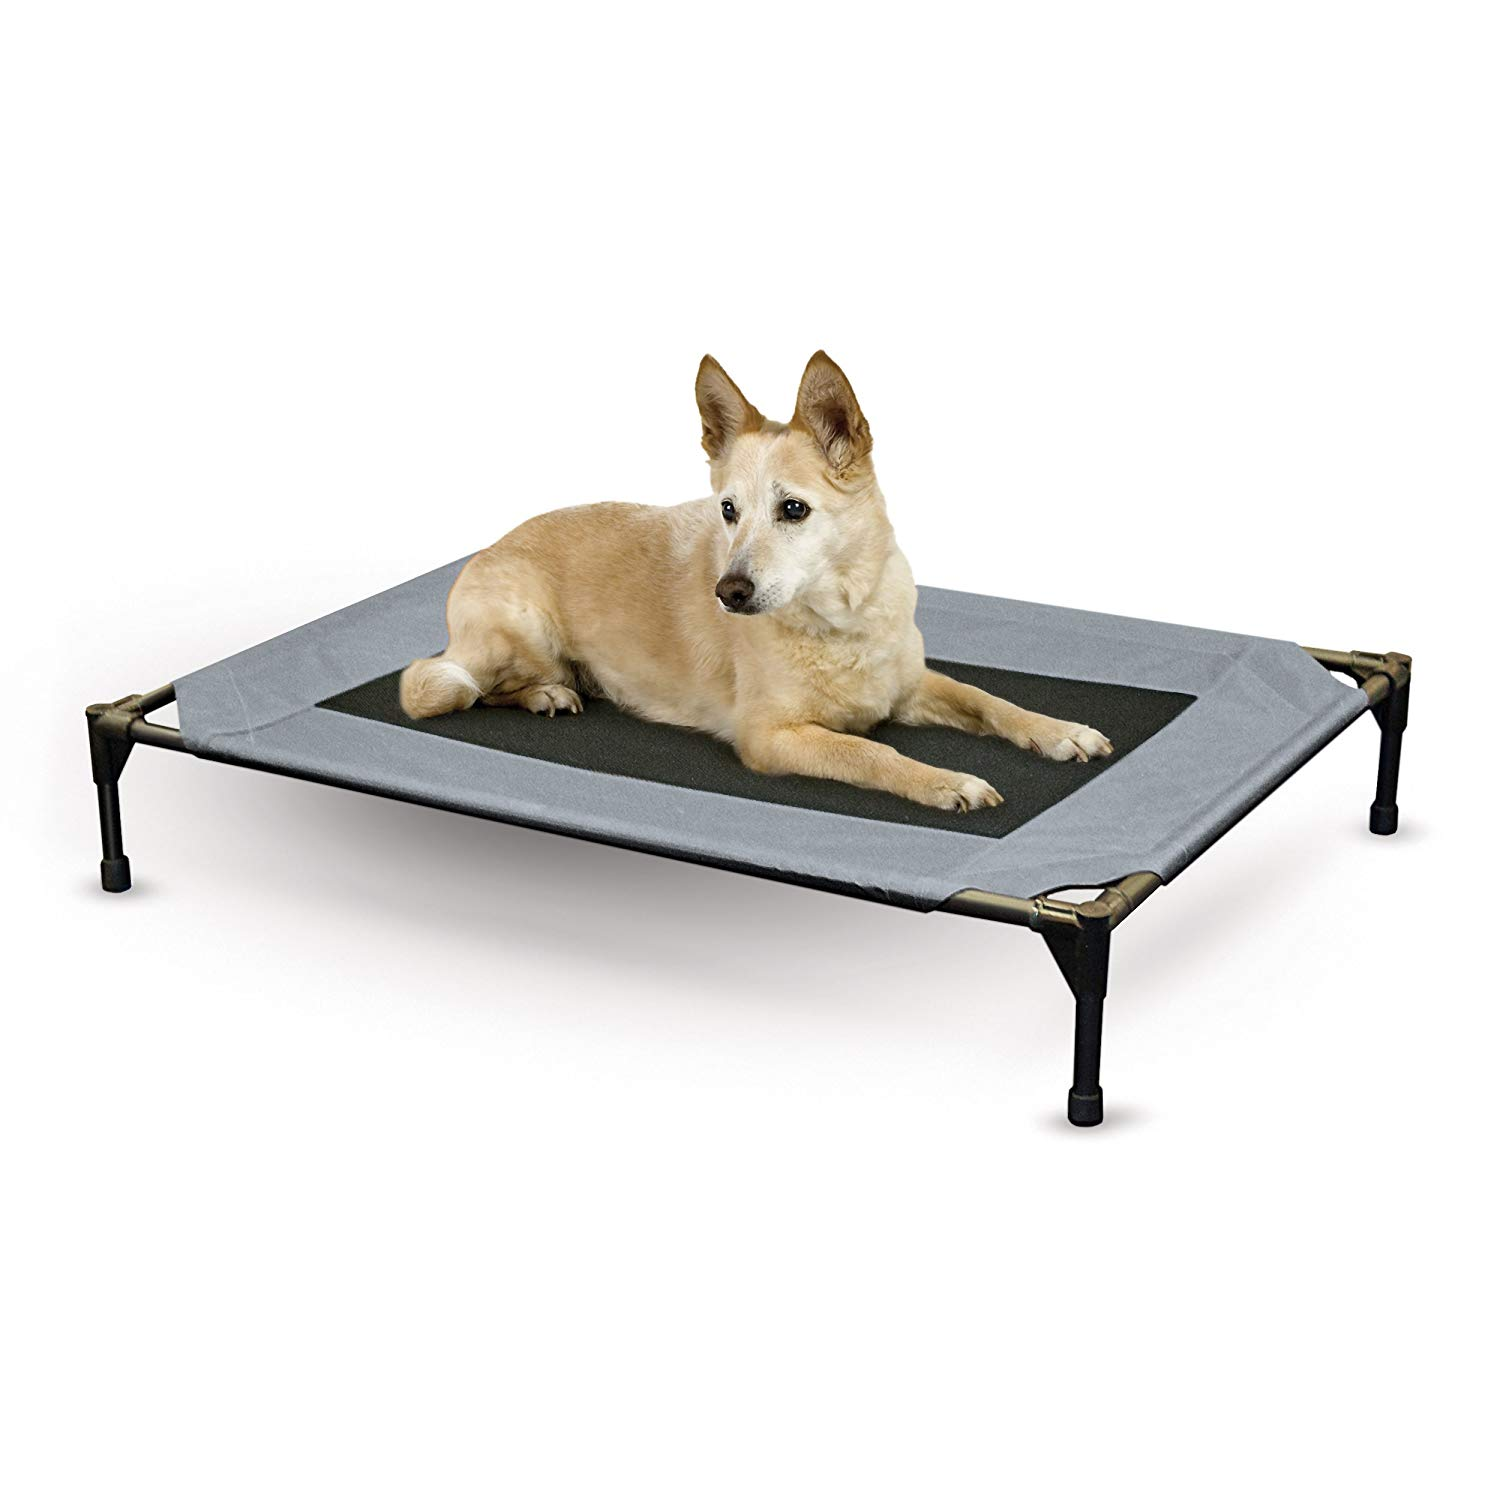 K H Pet Products Original Pet Cot Elevated Pet Bed